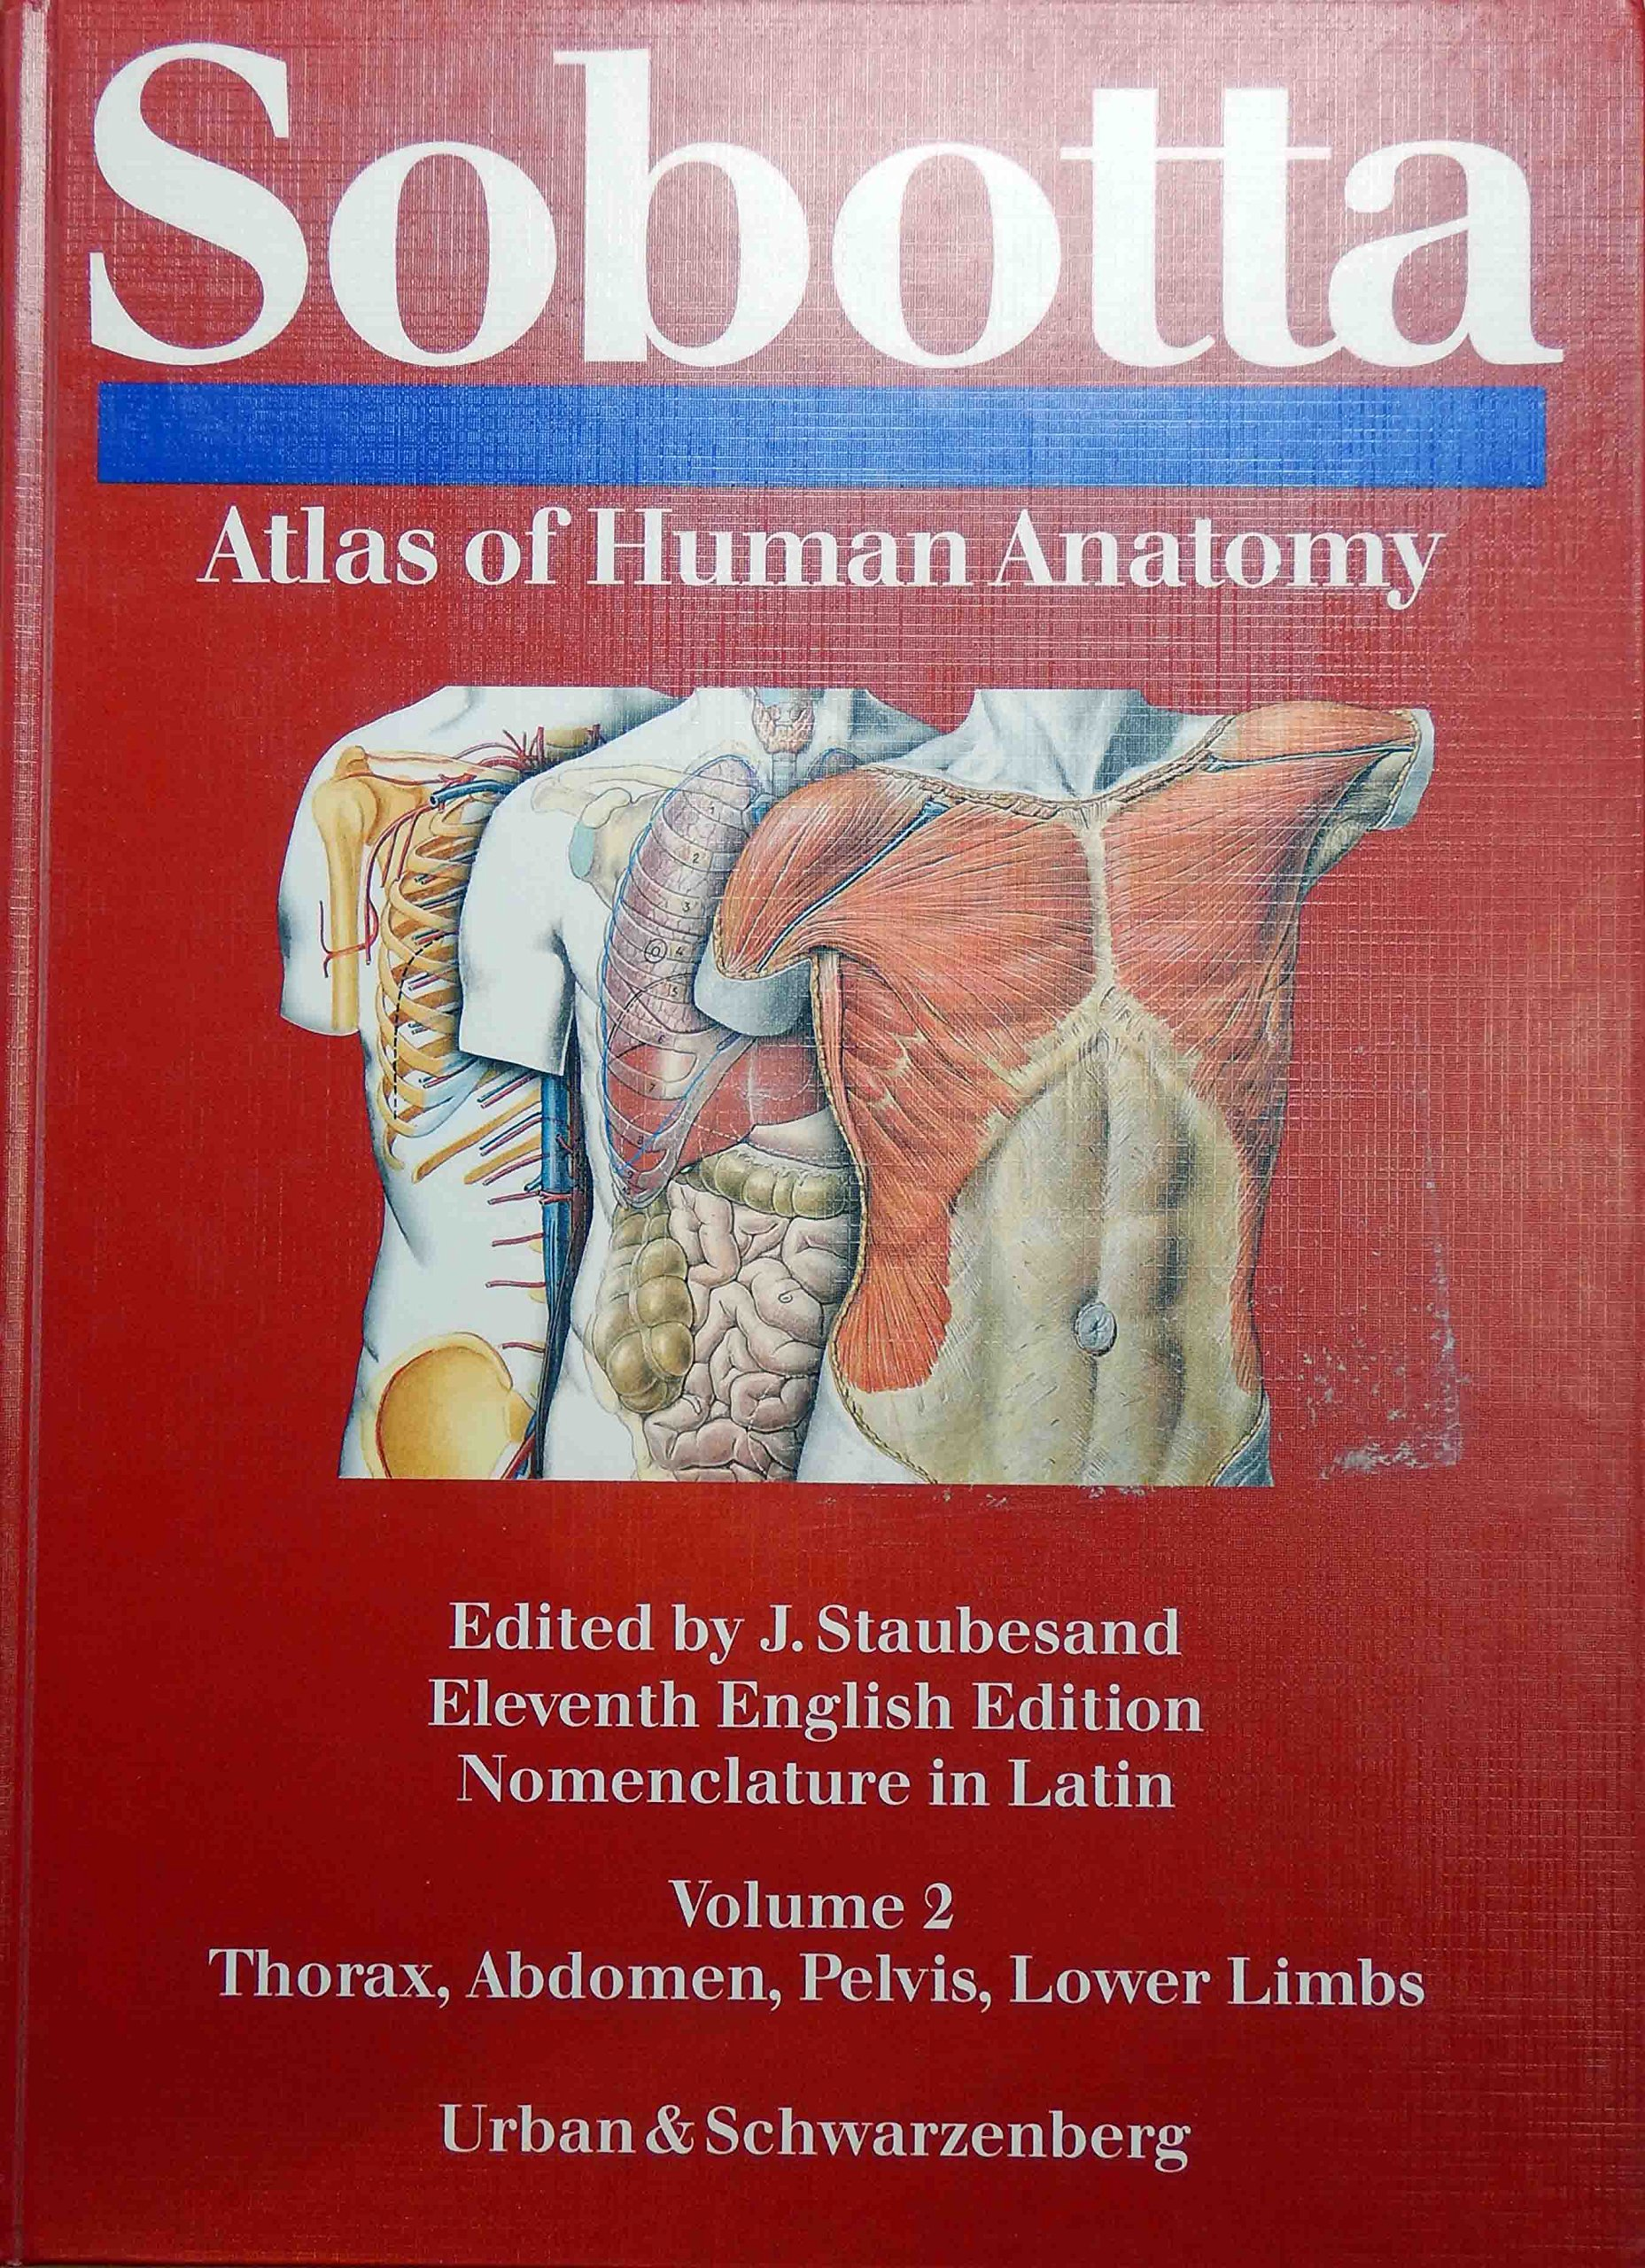 Sobottas Atlas Of Human Anatomy Volume 2 Thorax Abdomen Pelvis